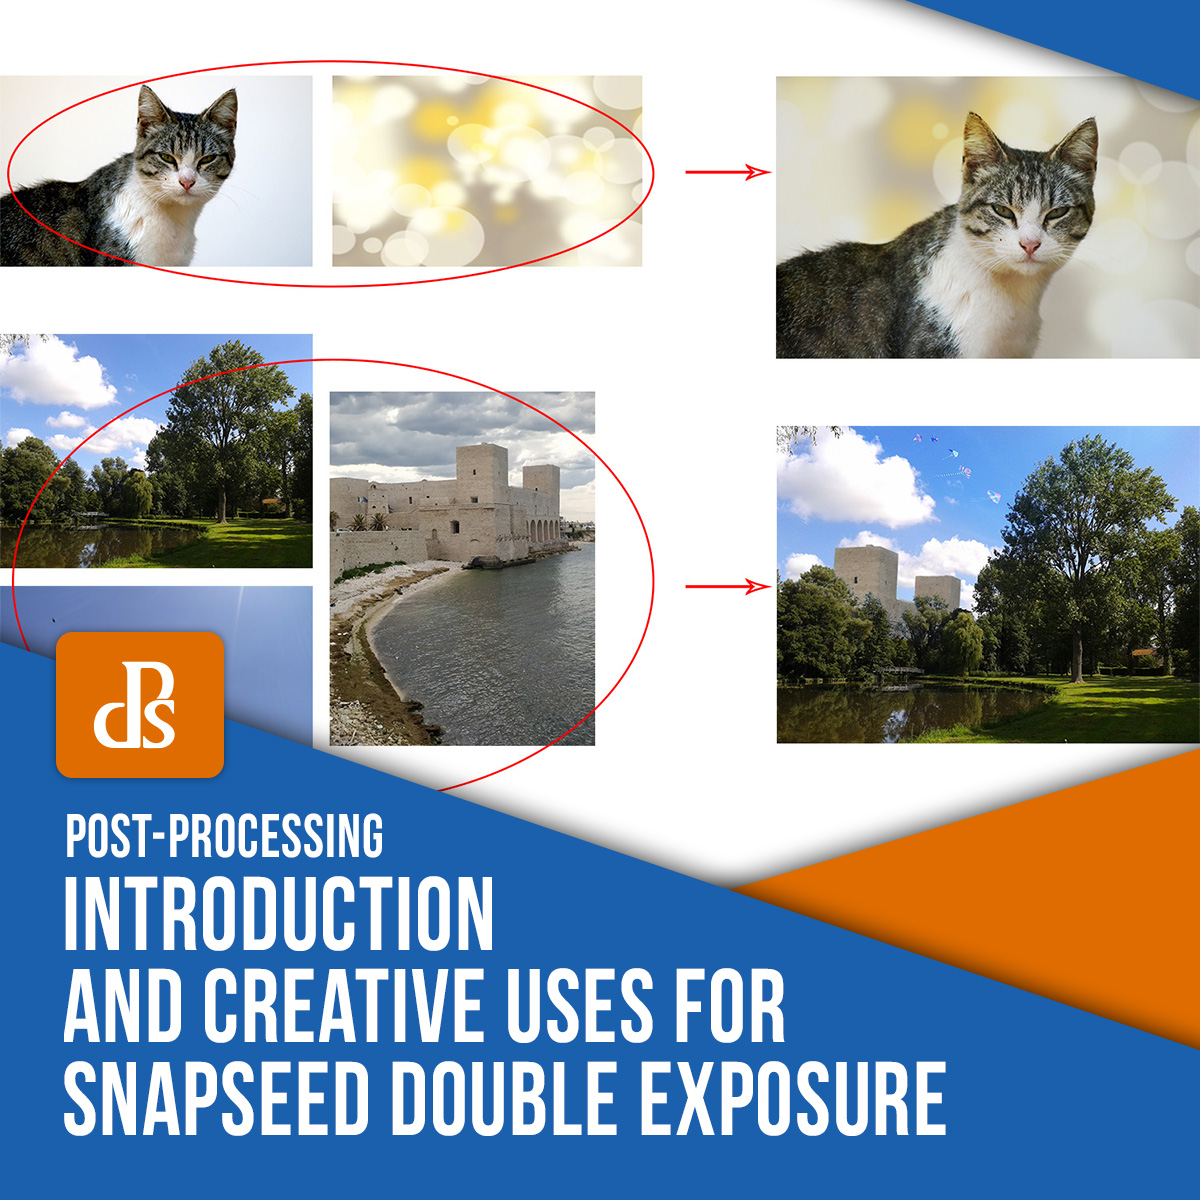 Snapseed double exposure feature uses and tips